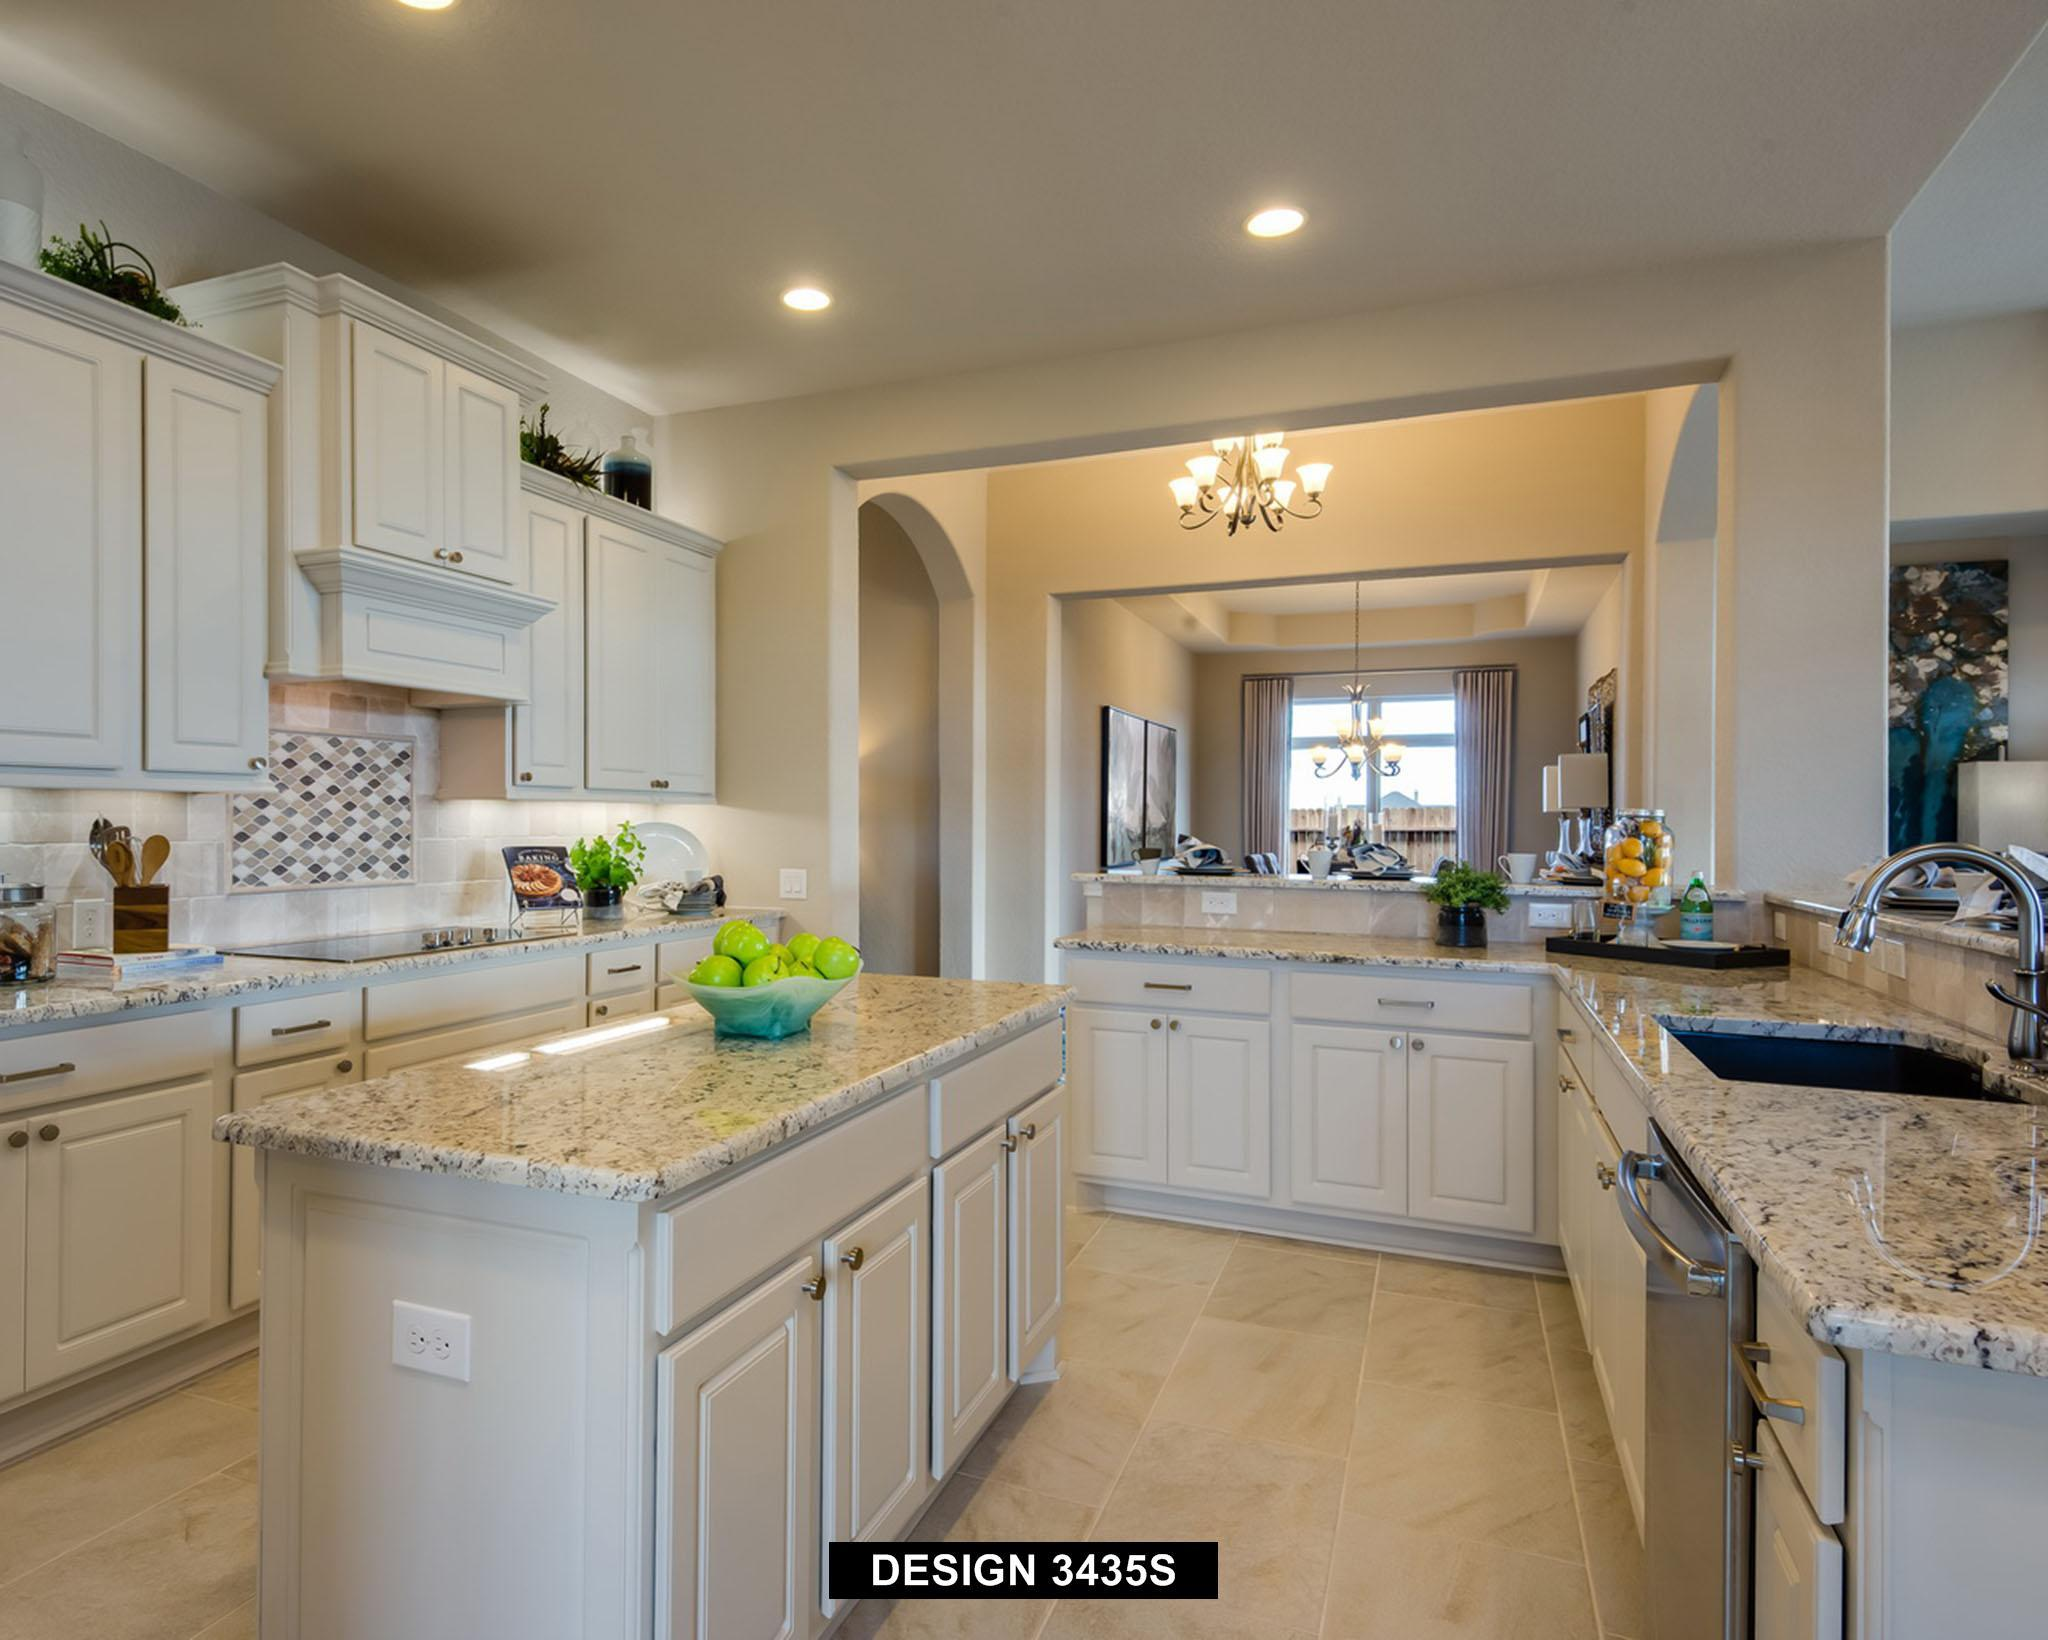 Kitchen-in-3435S-at-Balcones Creek Half Acre-in-Boerne